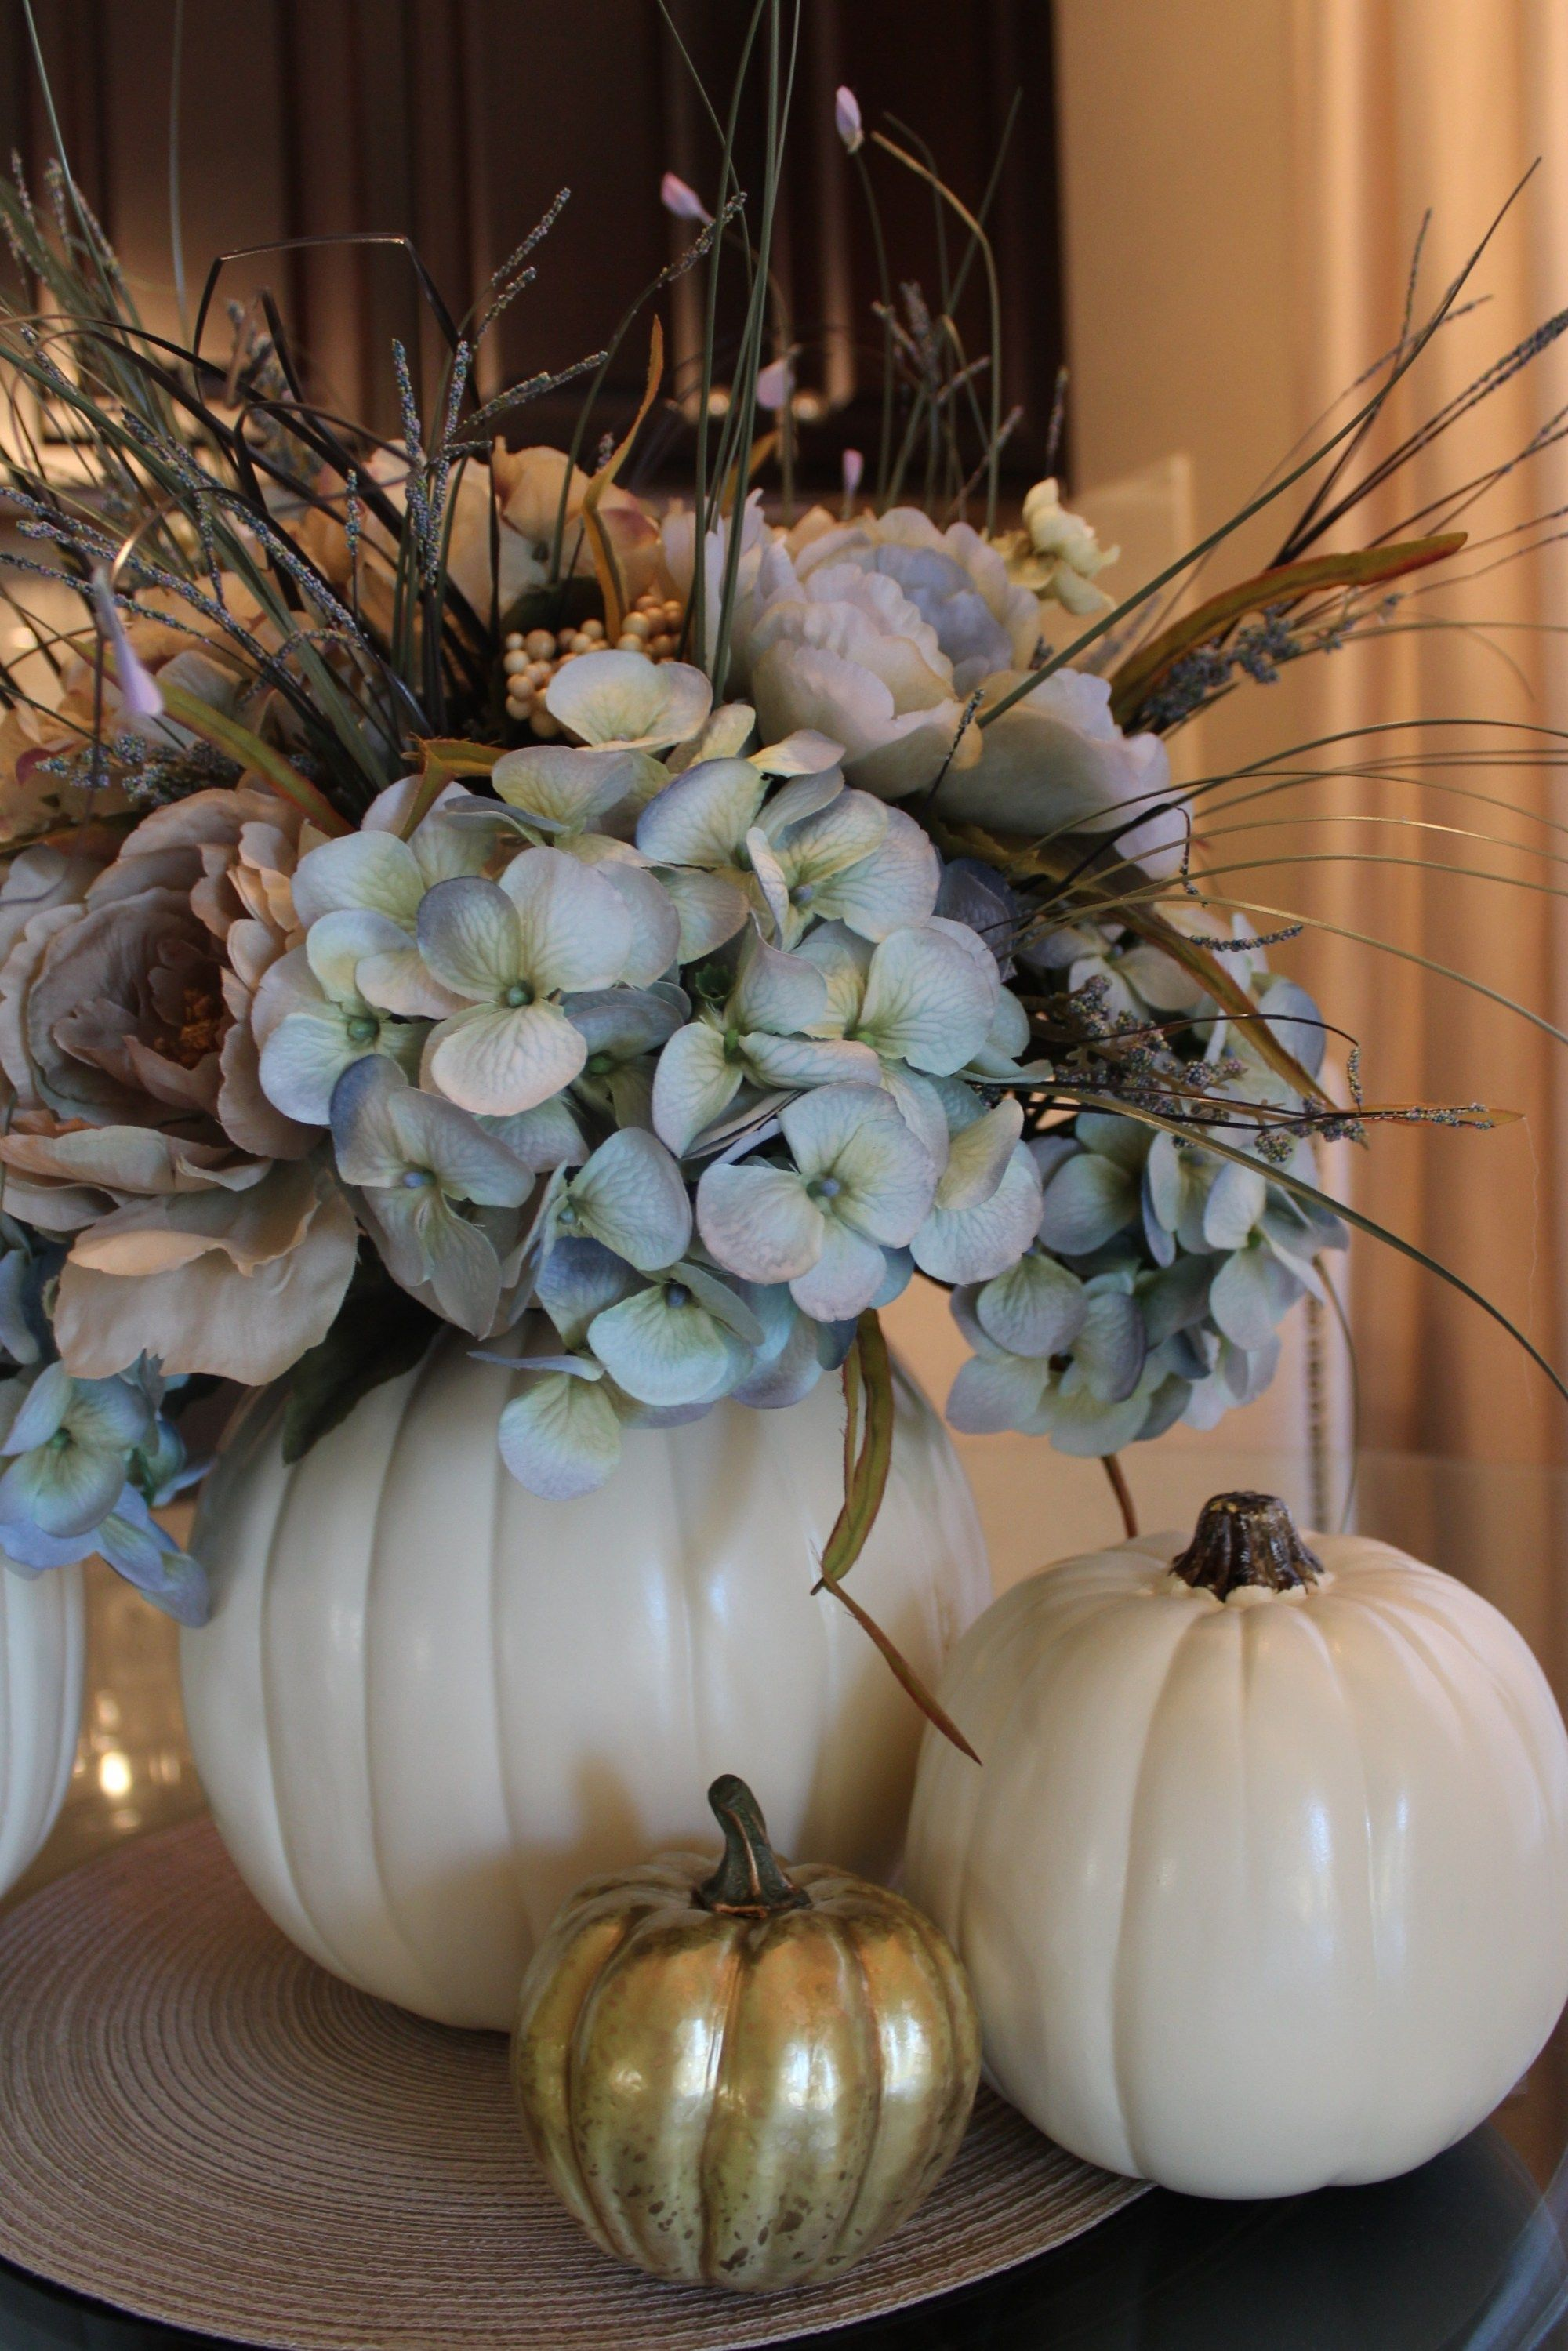 Pin by Jéssica on art prints in 2020 Fall table decor